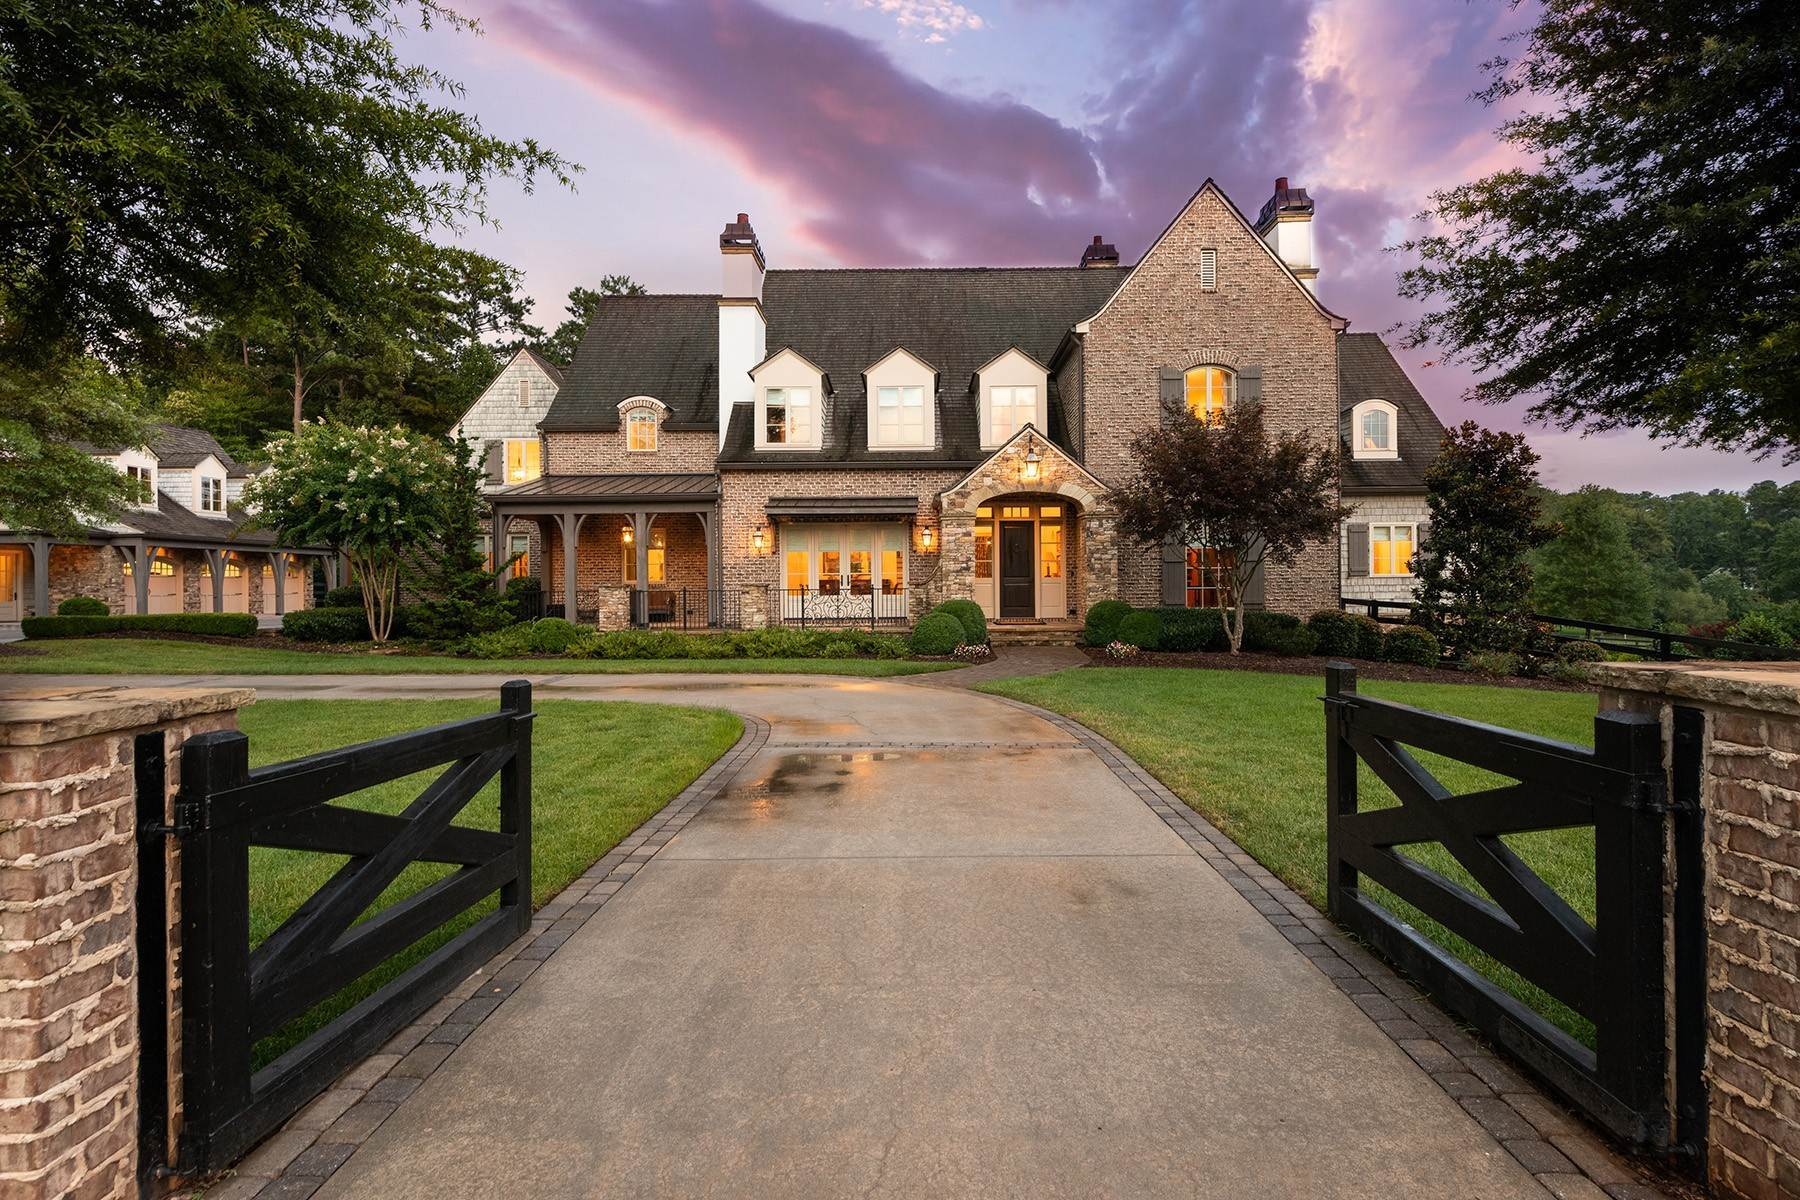 Single Family Homes for Active at Stunning Custom Built European Masterpiece With French Country Accents 725 Cogdell Ridge Milton, Georgia 30004 United States